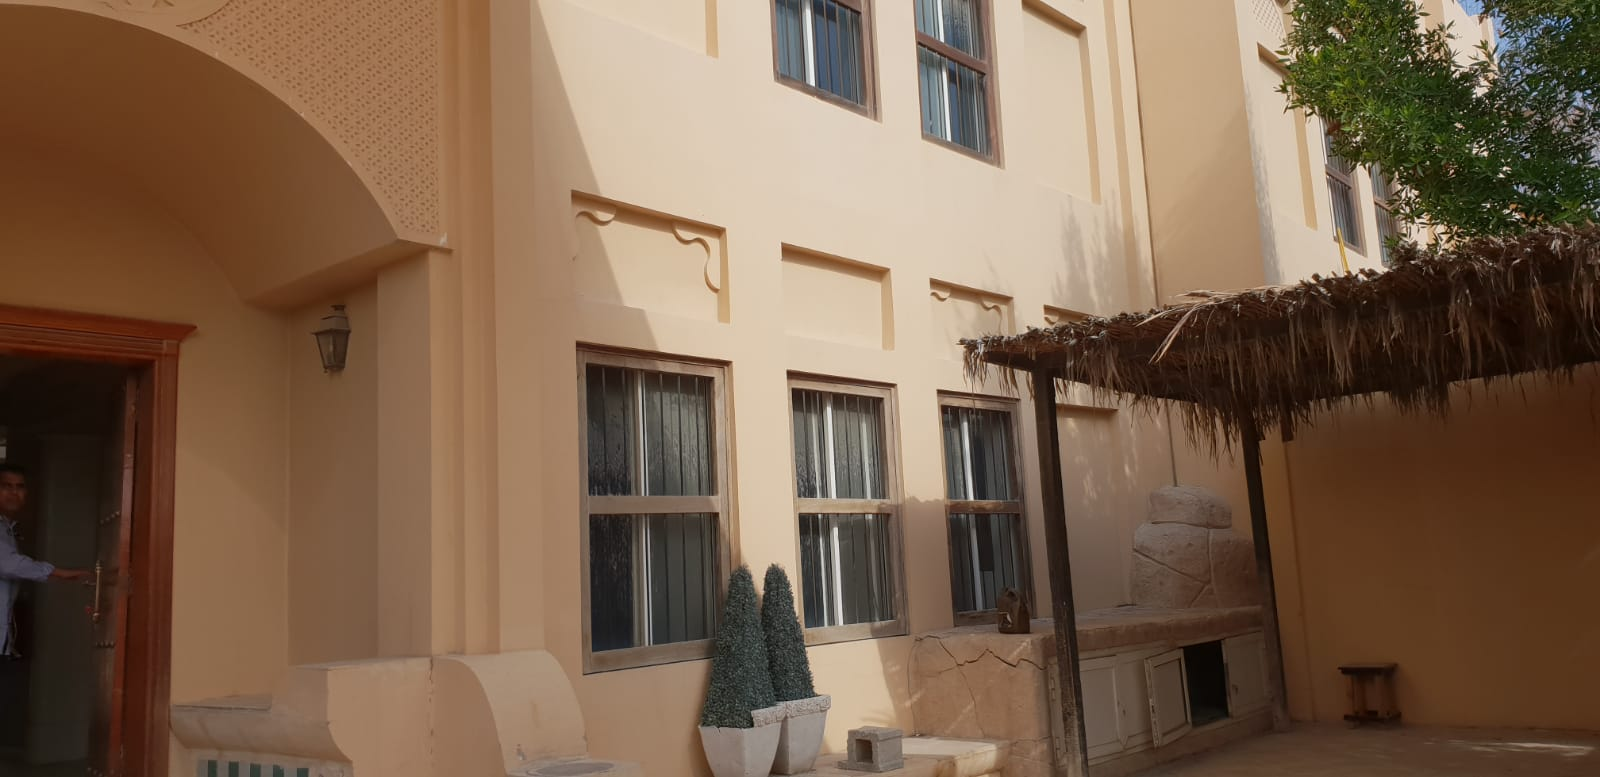 5 Bedroom Villa as semi - commercial or Residential Available for Rent in New Salata